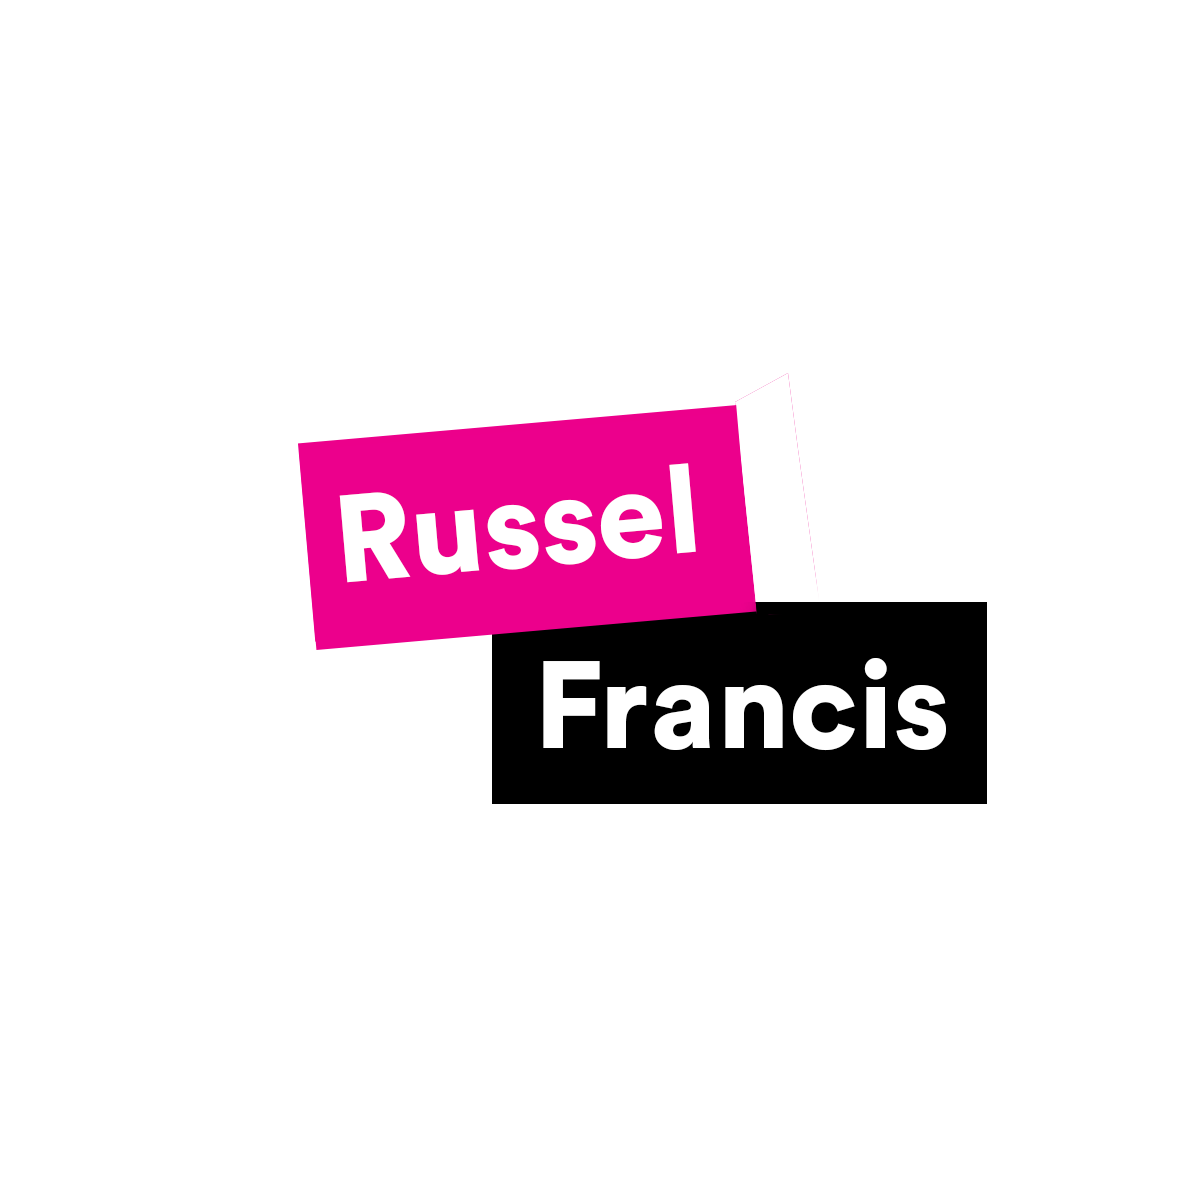 Russel Francis